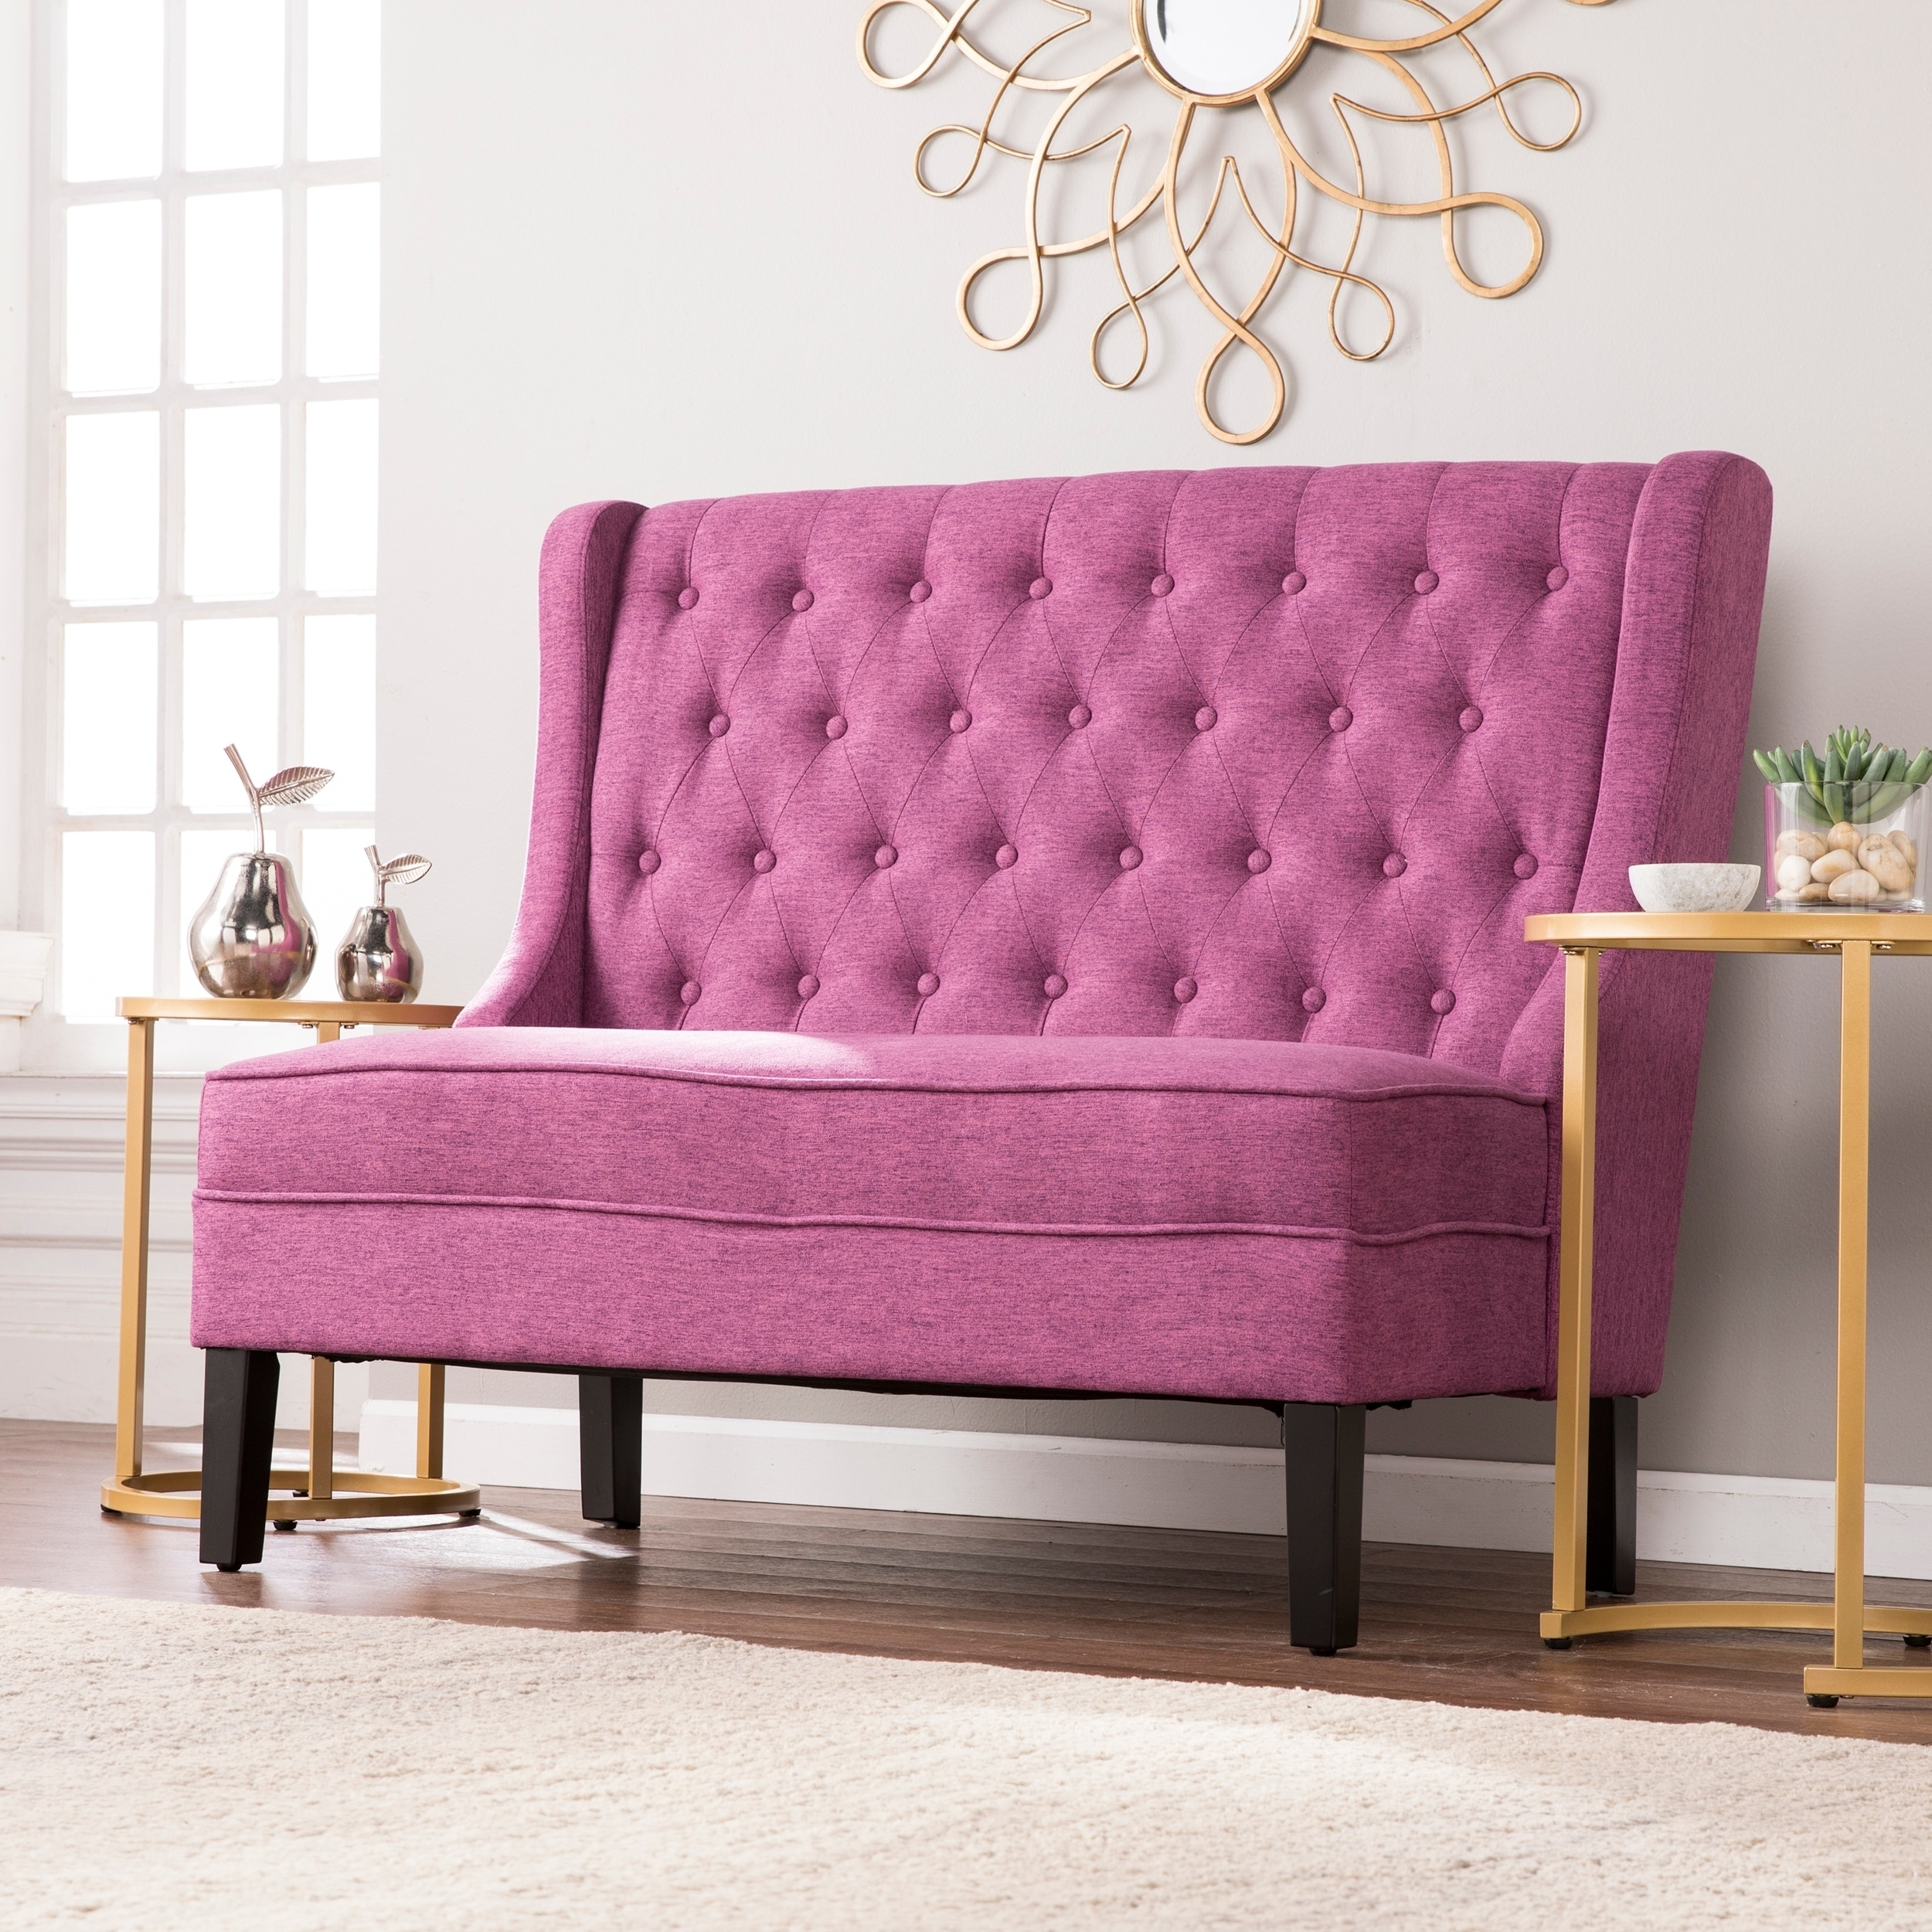 high blvd product today home harper free charcoal tufted settee bench overstock back shipping lincoln garden